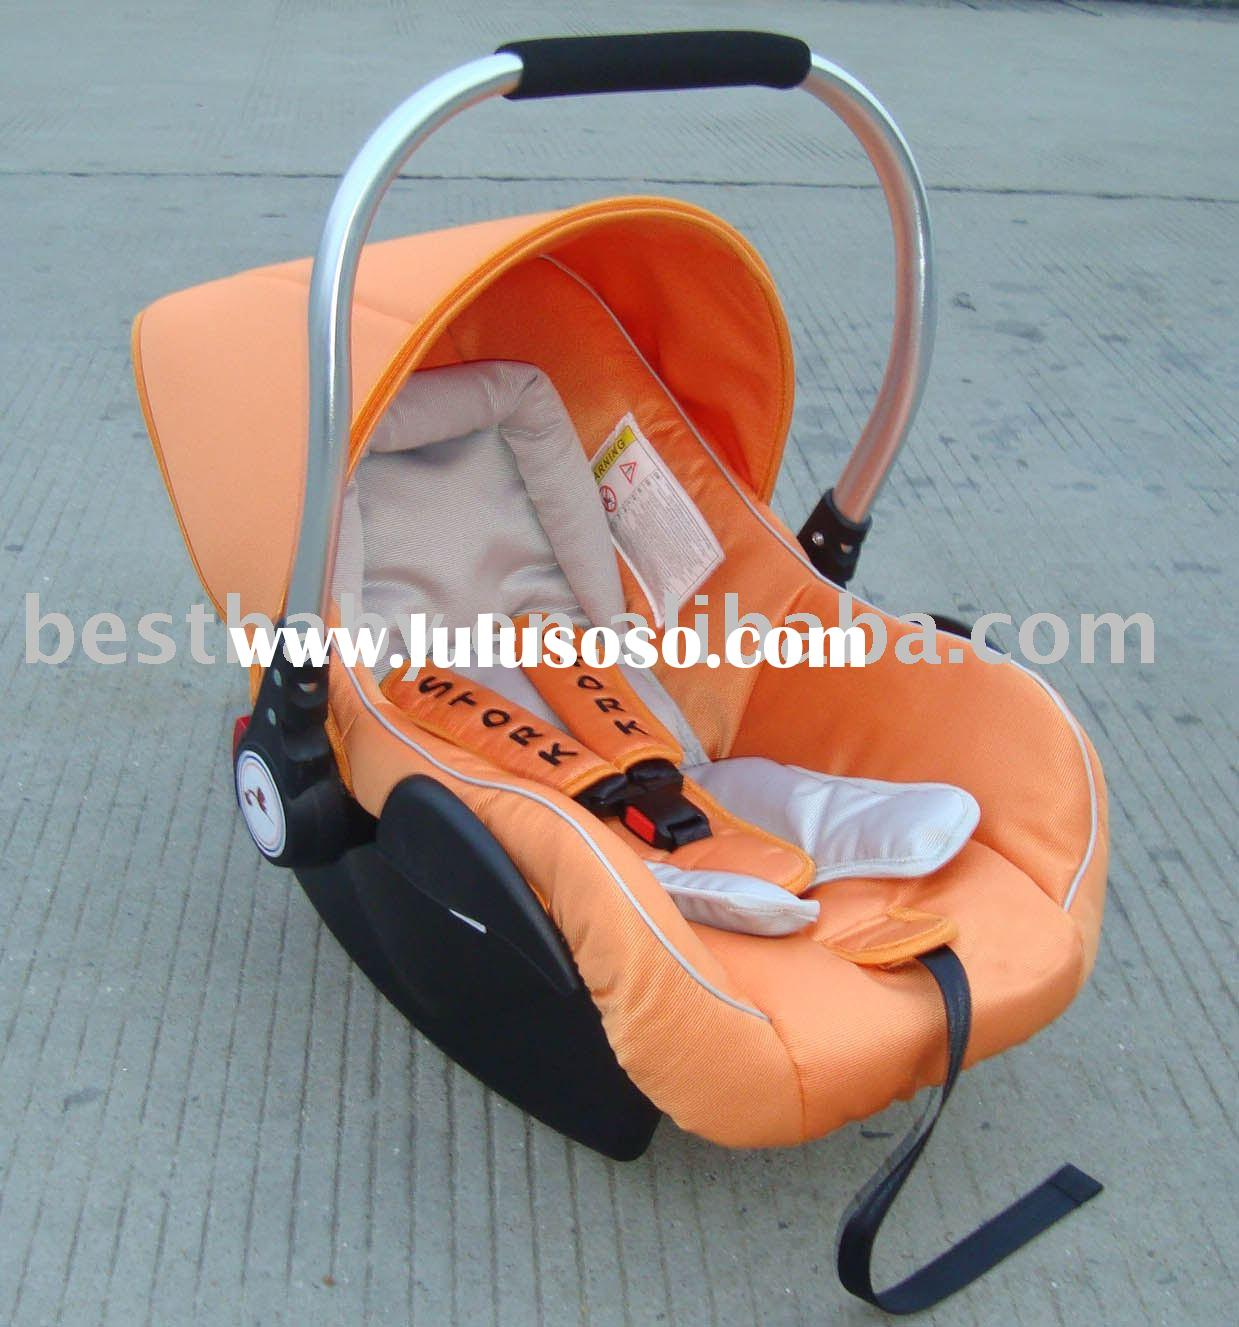 infant car seat,baby carrier,safety baby car seats LB321 with ECE R44.04